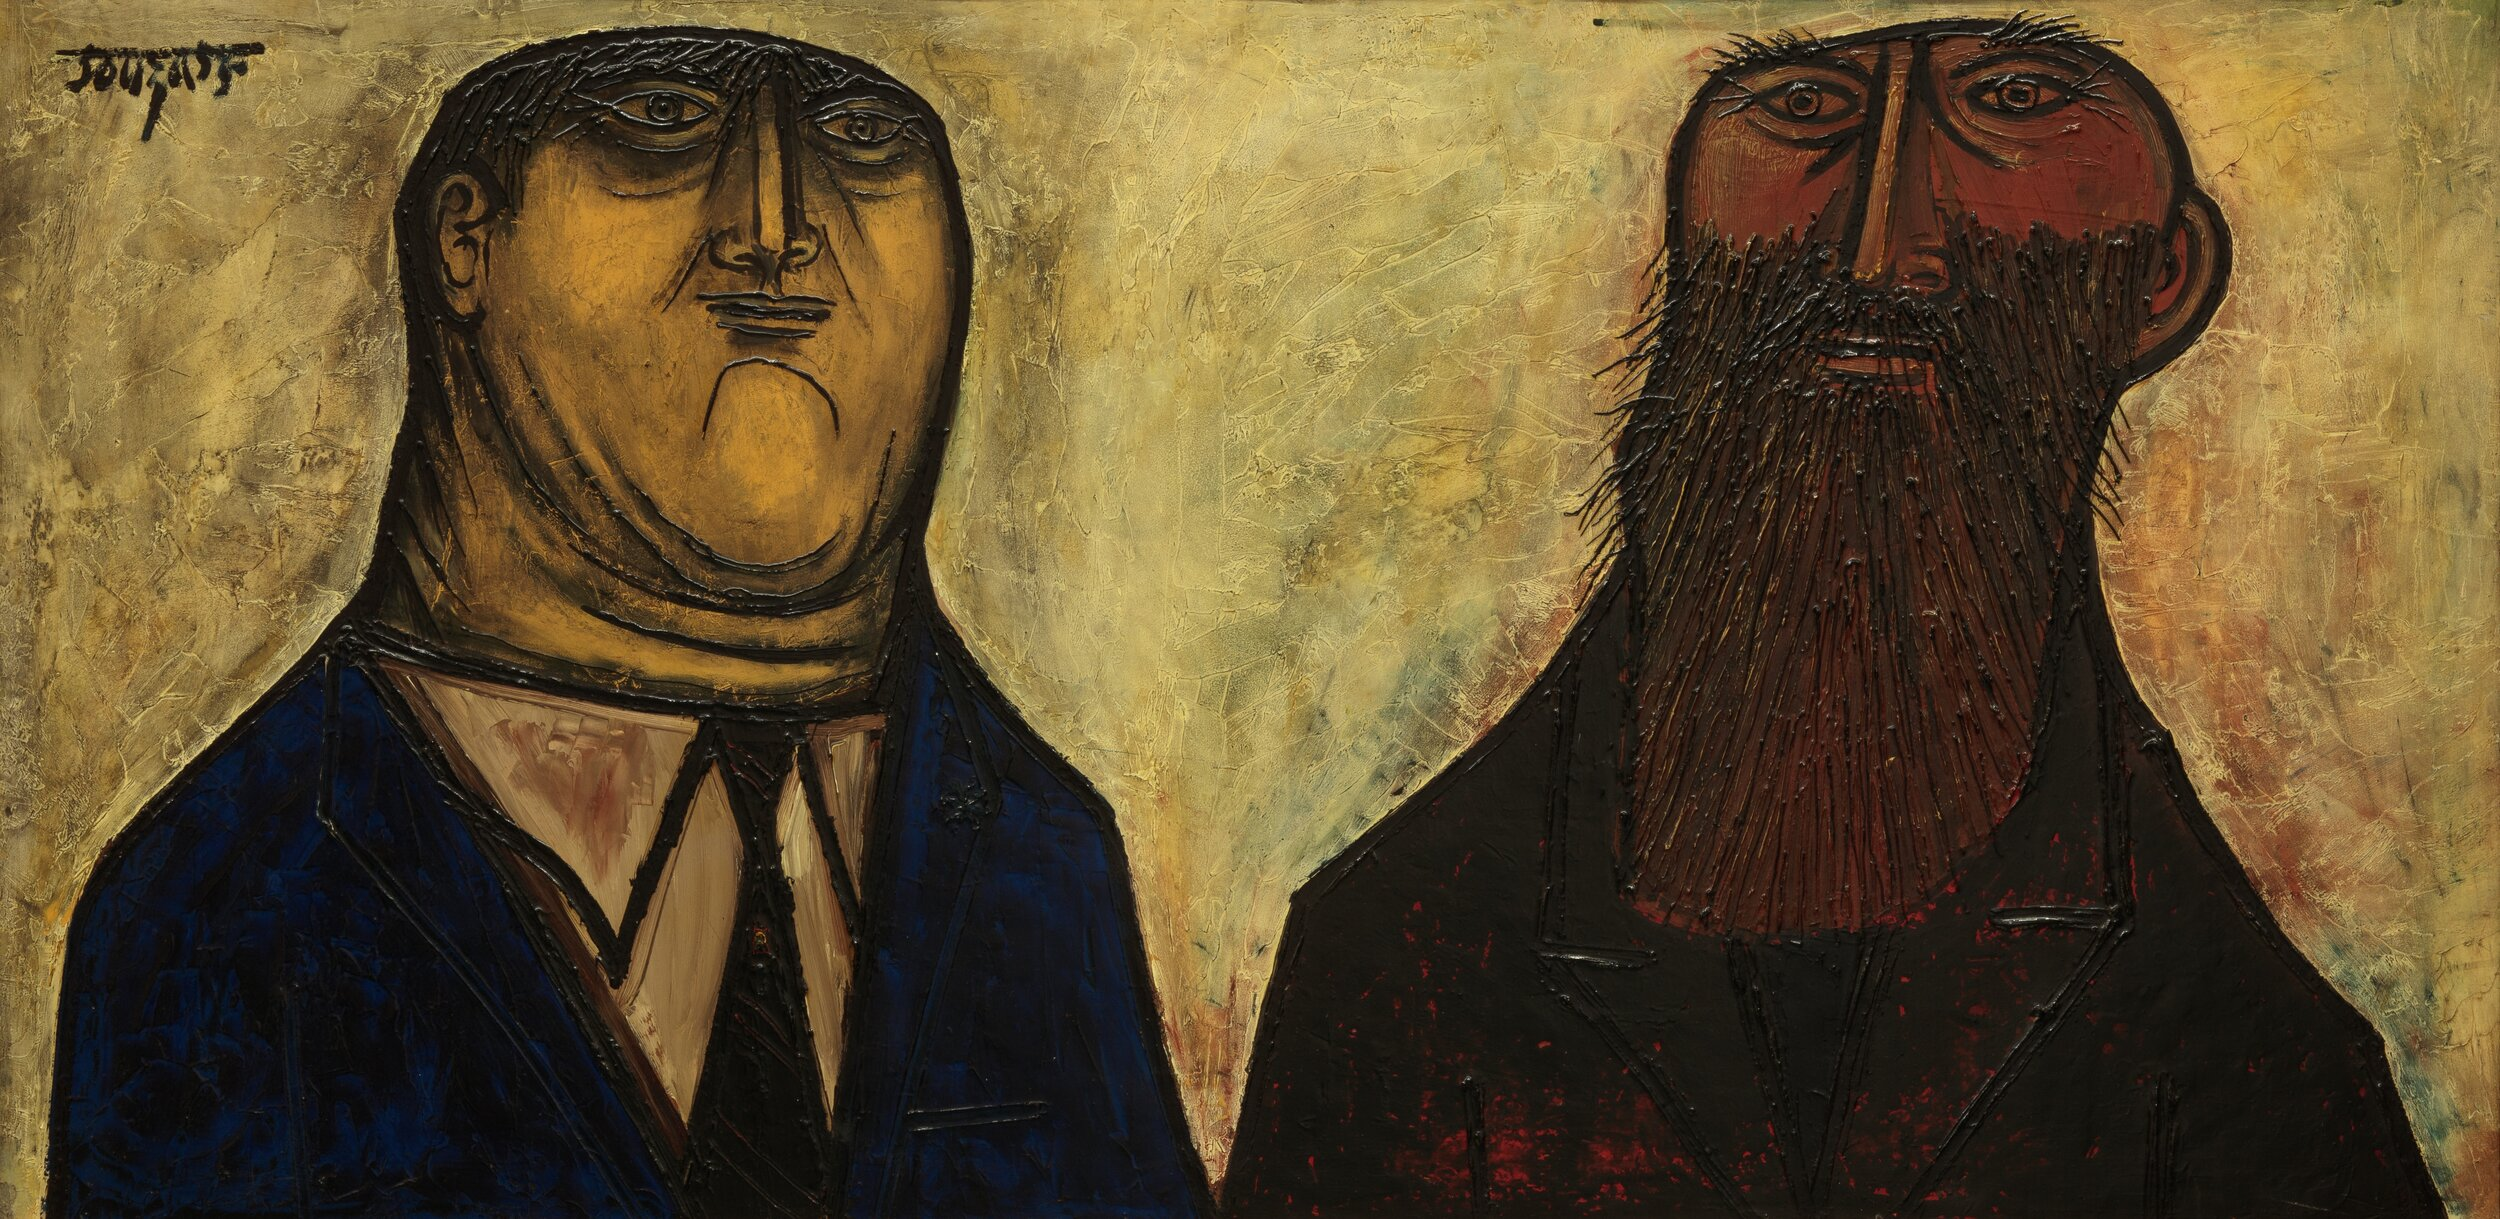 F.N. Souza  Tycoon and the Tramp , 1955, Oil on masonite H. 32 x W. 56 in. (81.3 x 142.2 cm), Shumita and Arani Bose Collection, New York. Photography by Richard Goodbody